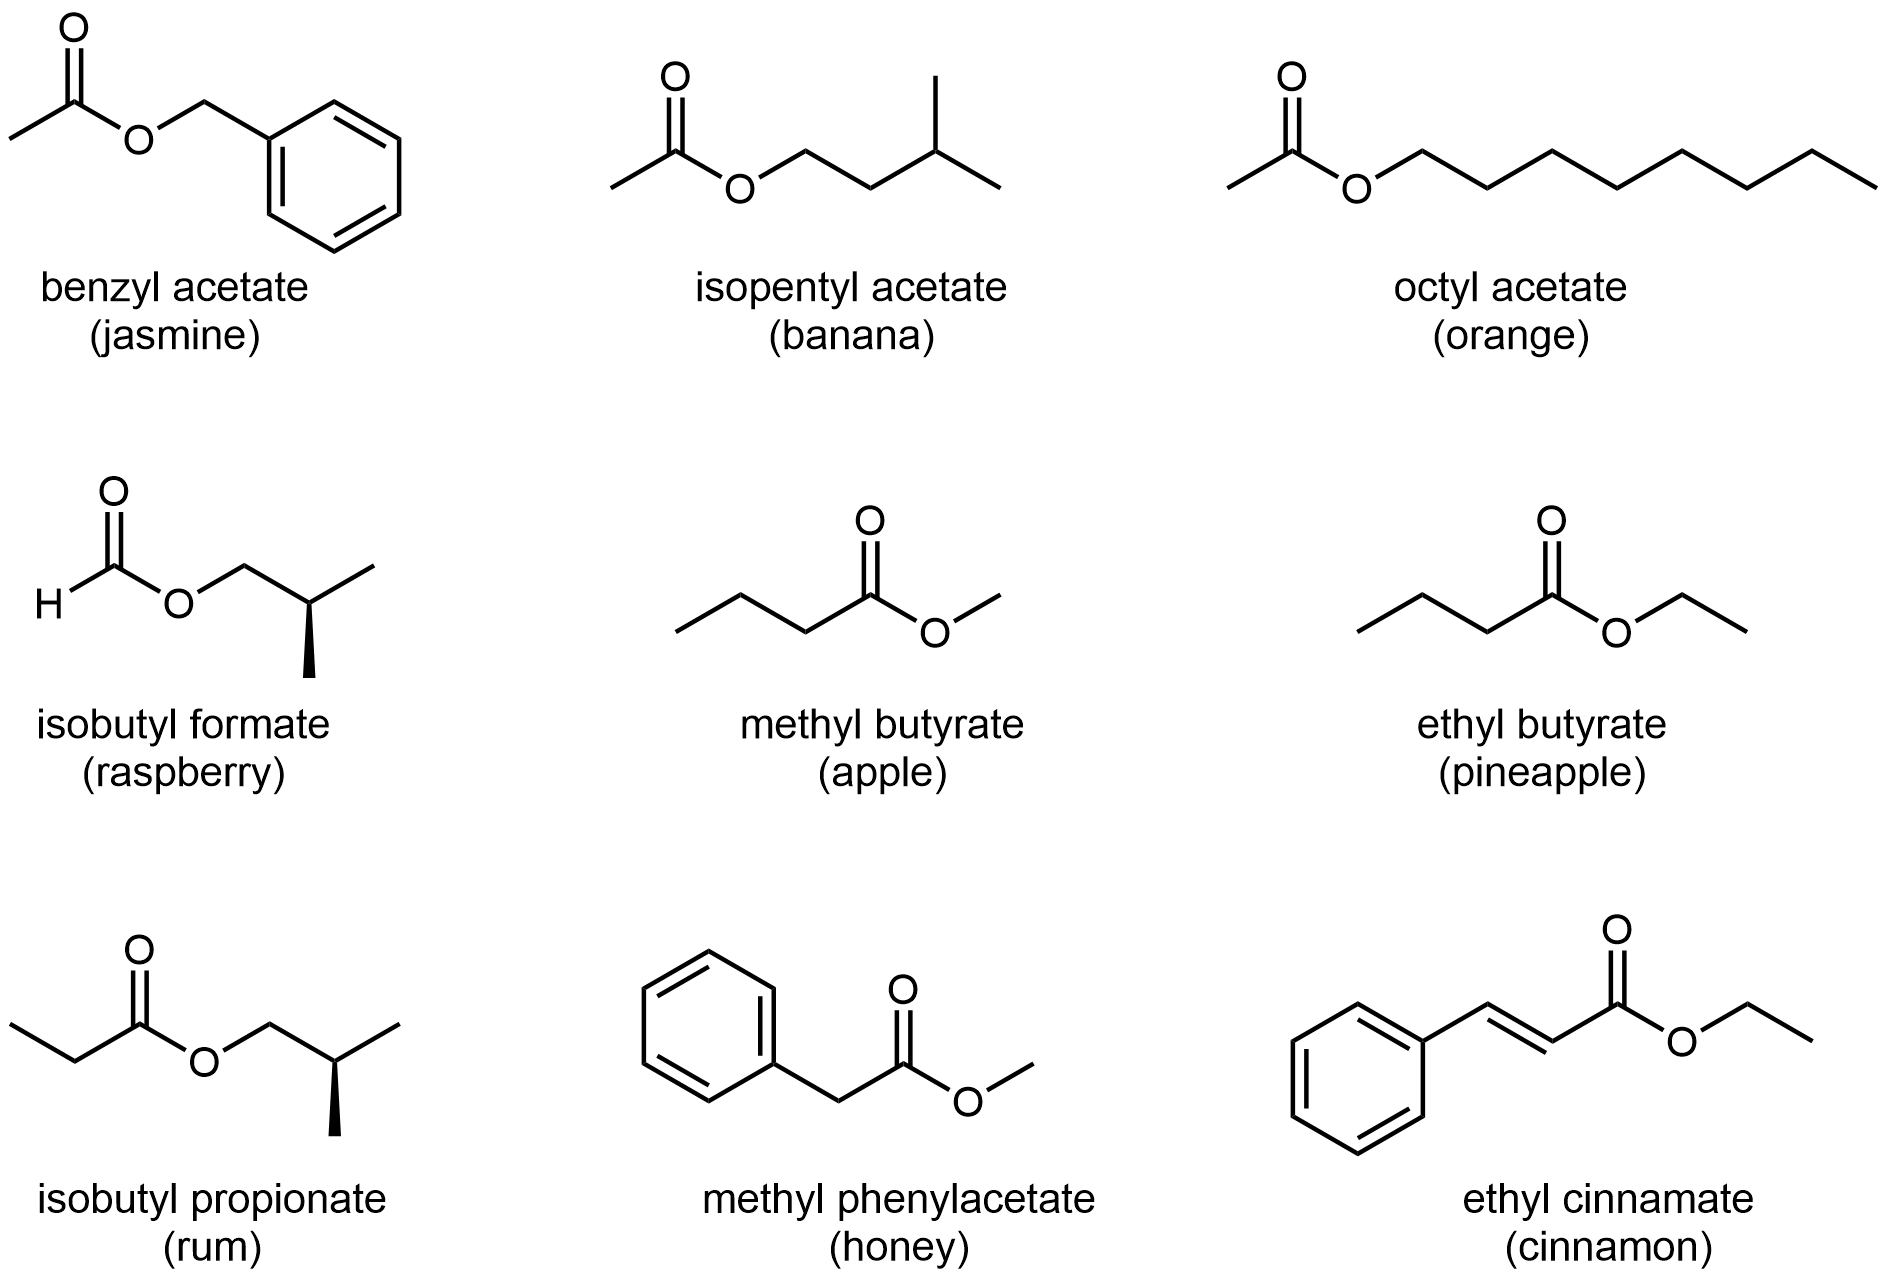 """There are nine structures represented in this figure. The first is labeled """"benzyl acetate (jasmine)"""". It has a methyl group bonded to ester C and a benzyl group bonded to ester O. The second is labeled """"isopentyl acetate (banana)"""". It has a methyl group bonded to ester C and an isopentyl (3-methylbutyl) group bonded to ester O. The third is labeled """"octyl acetate (orange)"""". It has a methyl group bonded to ester C and a octyl group bonded to ester O. The fourth is labeled """"isobutyl formate (raspberry)"""". It has an H atom bonded to ester C and an isobutyl group bonded to ester O. The fifth is labeled """"methyl butyrate (apple)"""". It has a propyl group bonded to ester C and a methyl group bonded to ester O. The sixth is labeled """"ethyl butyrate (pineapple)"""". It has a propyl group bonded to ester C and a ethyl group bonded to ester O. The seventh is labeled """"isobutyl propionate (rum)"""". It has an ethyl group bonded to ester C and a isobutyl group bonded to ester O. The eighth is labeled """"methyl phenylacetate (honey)"""". It has a benzyl group bonded to ester C and a methyl group bonded to ester O. The ninth is labeled """"ethyl cinnamate (cinnamon)"""". It has a styrene group bonded to ester C and an ethyl group bonded to ester O."""